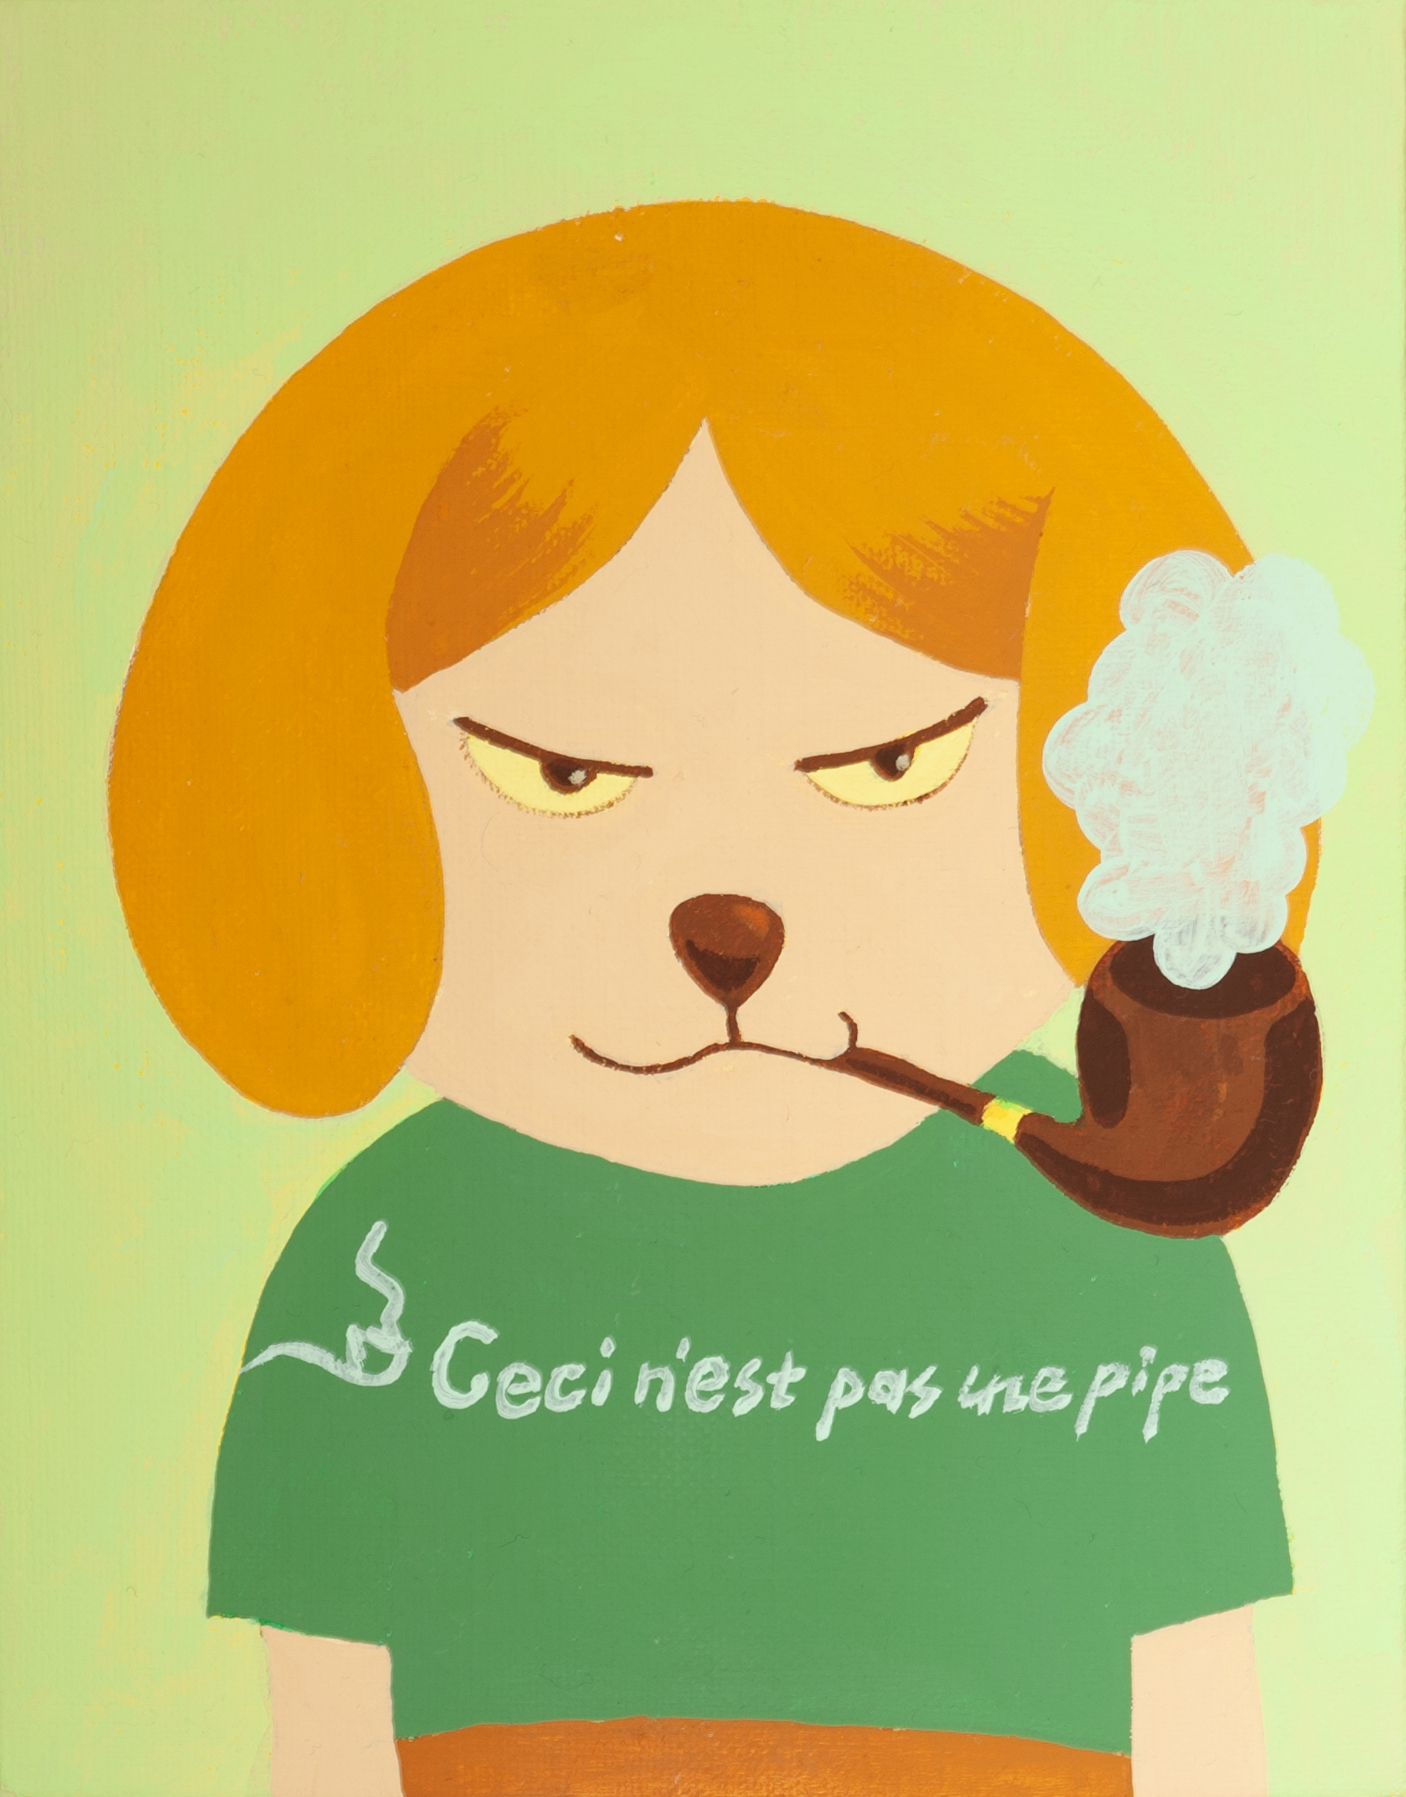 Bobby -Ceci nest pas une pipe-